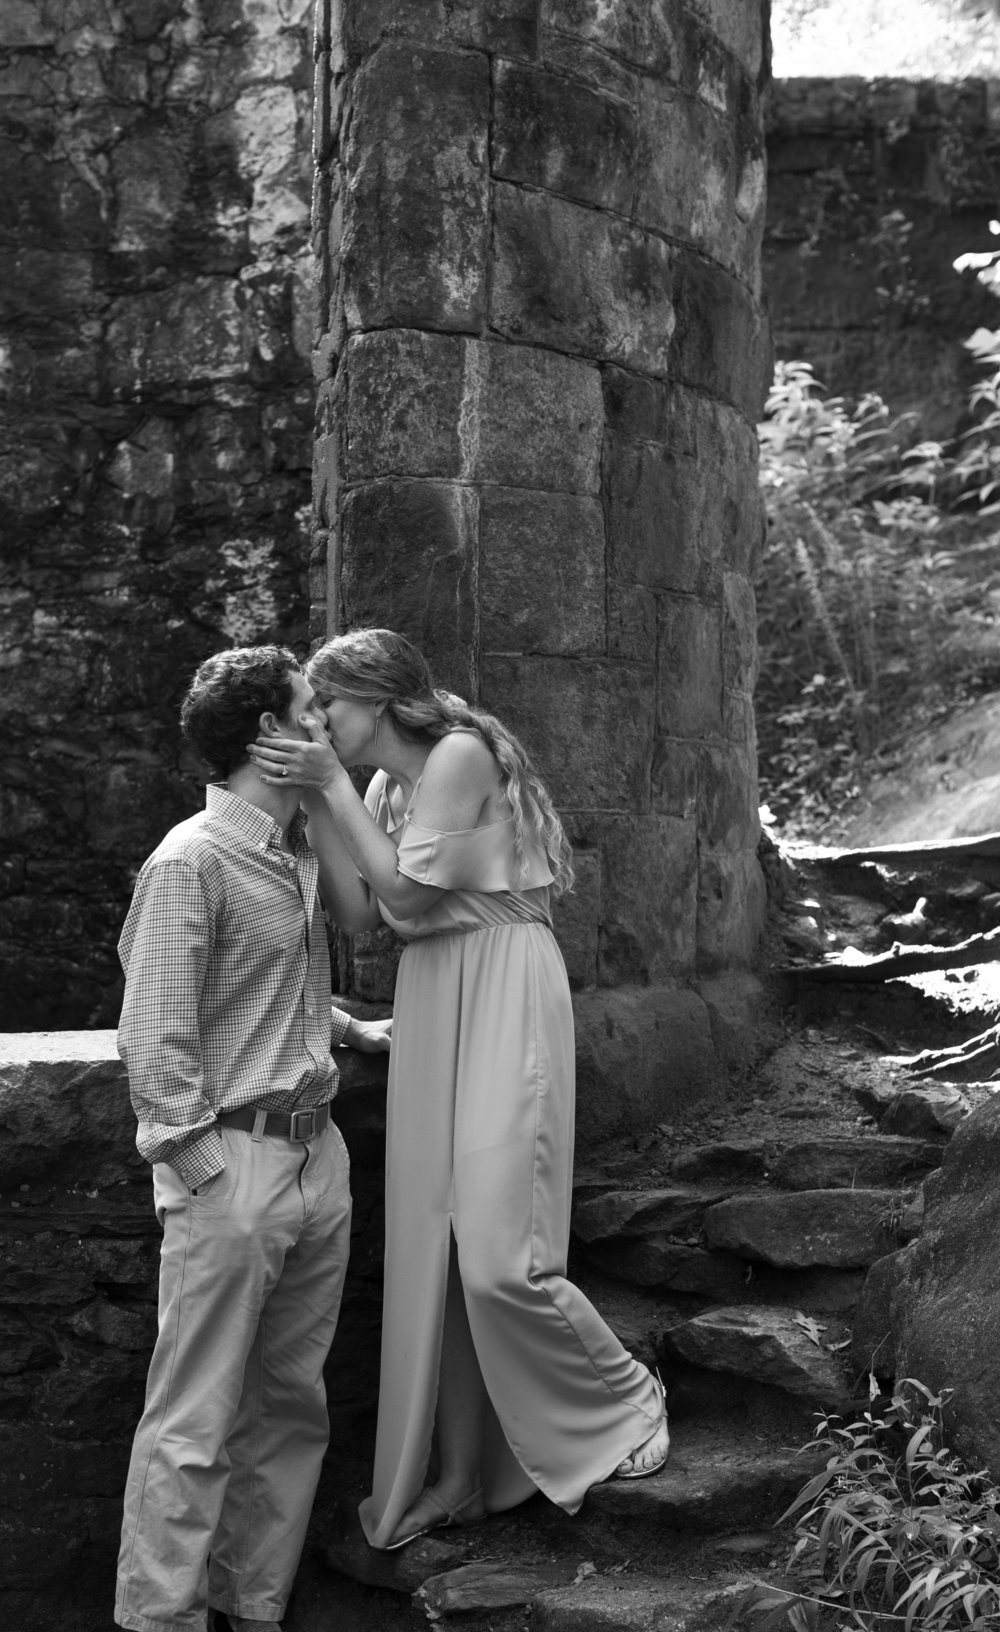 Paris Mountain State Park in Greenville South Carolina, Engagement Photography Session by Courtney Sample Photography